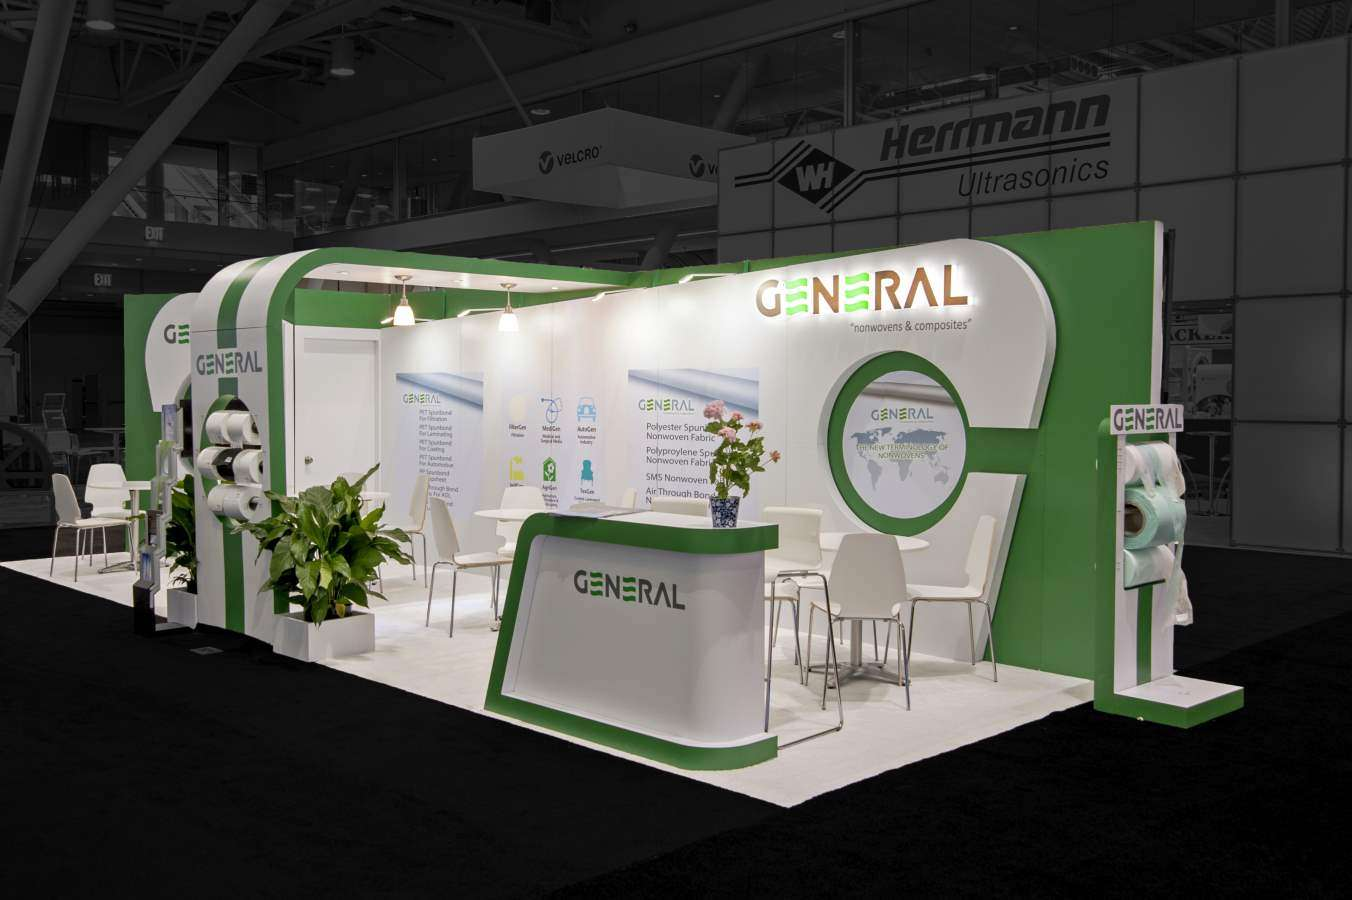 Excellent Exhibition Stand Design : Trade show displays solutions event exhibits tradeshow